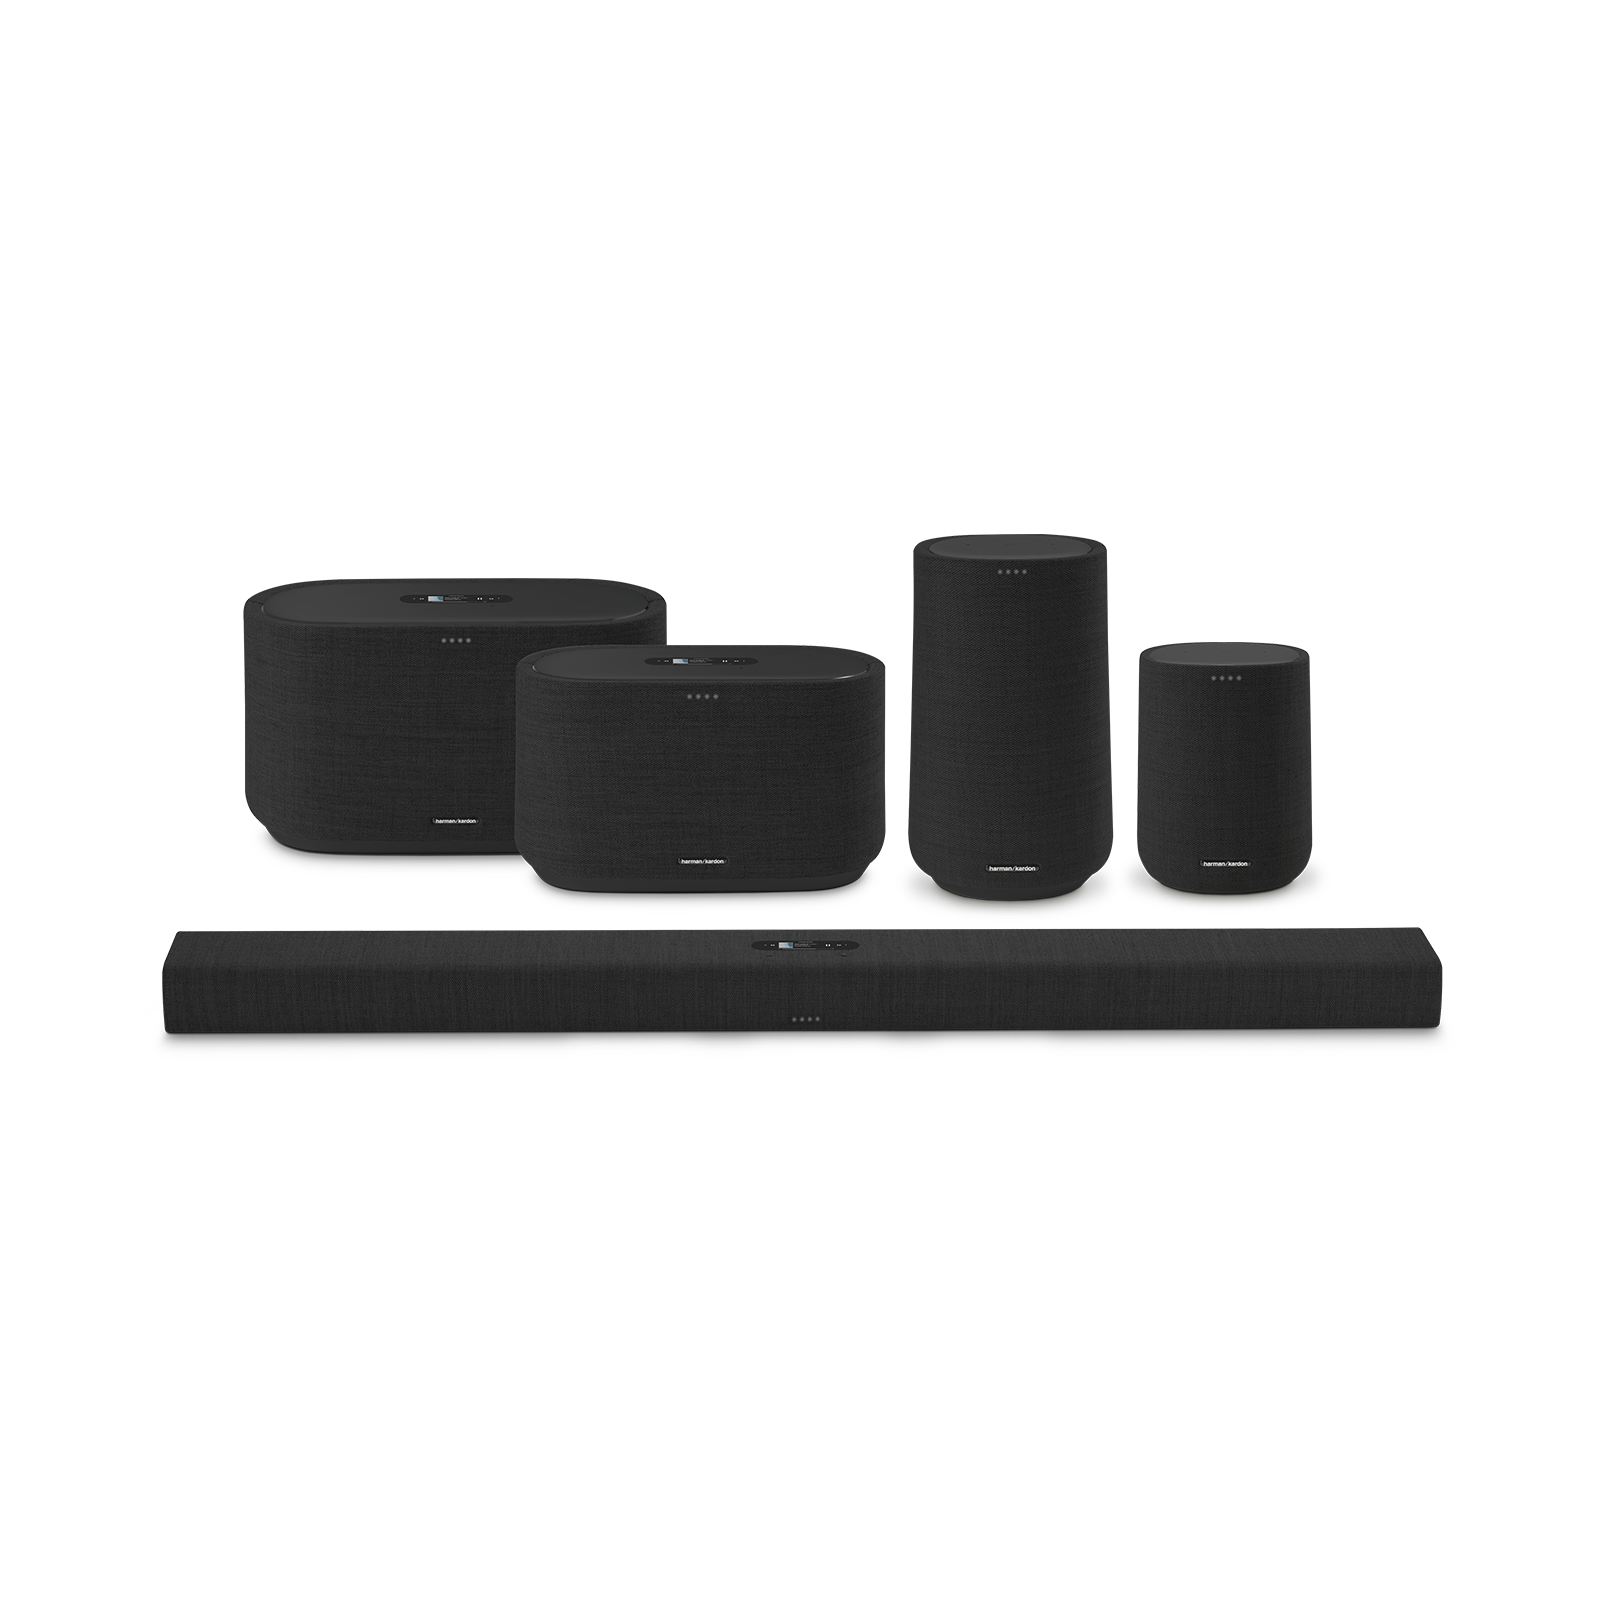 Harman Kardon Citation One MKII - Black - All-in-one smart speaker with room-filling sound - Detailshot 5